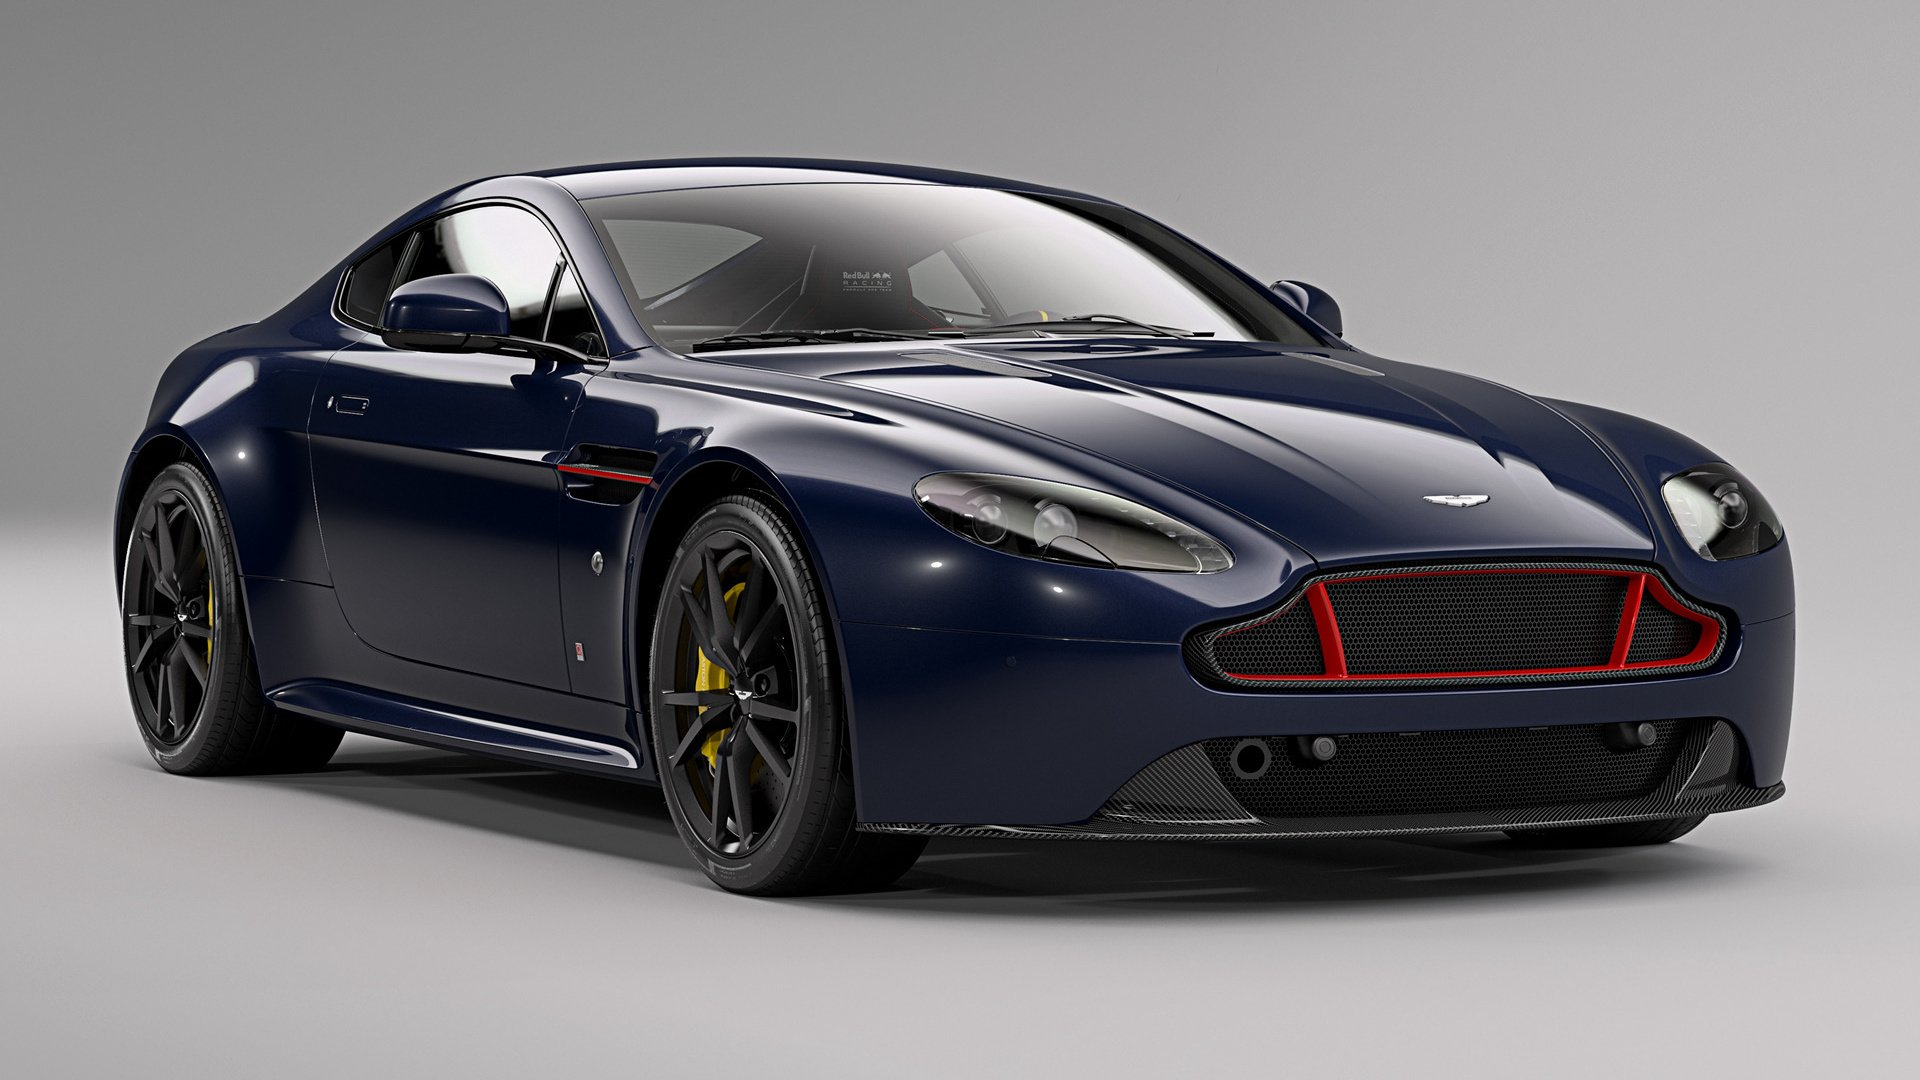 2017 Aston Martin V8 Vantage S Red Bull Racing Hd Wallpaper Background Image 1920x1080 Id 885836 Wallpaper Abyss